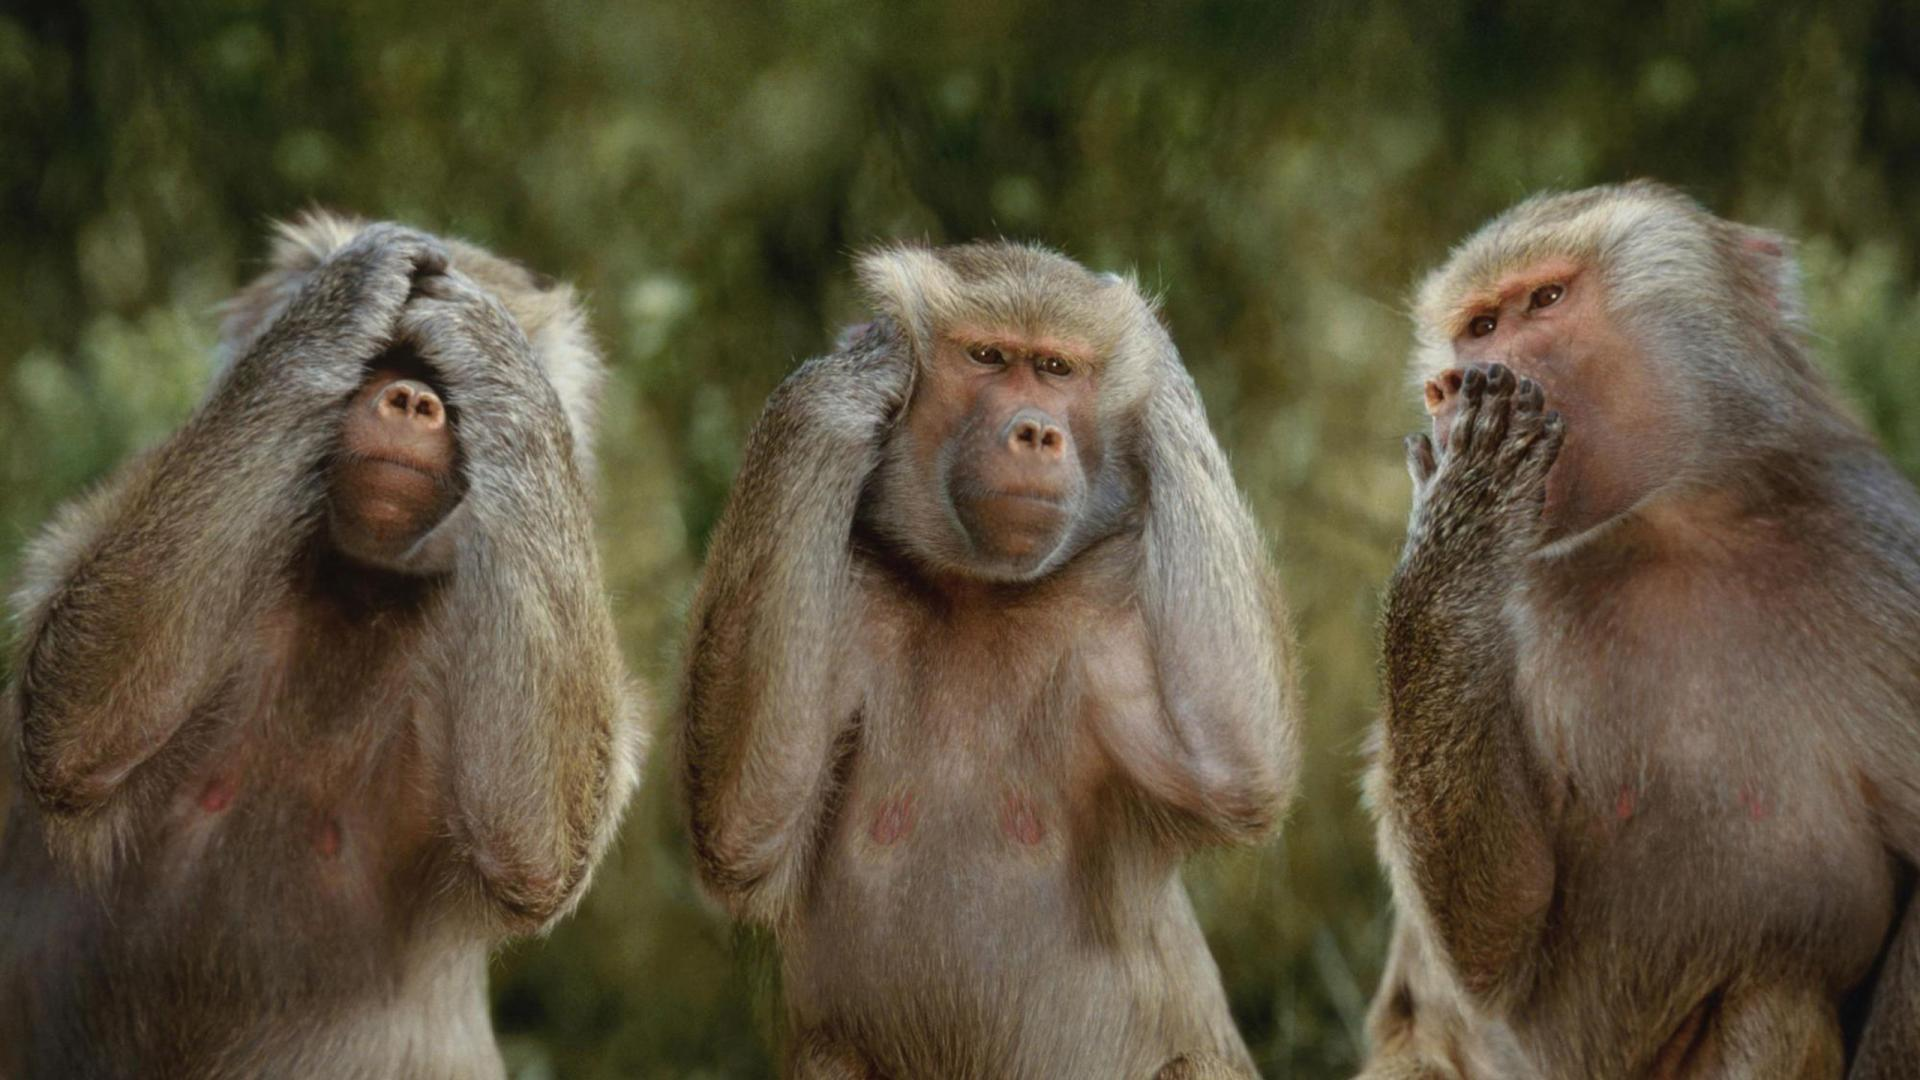 168 Monkey Wallpapers | Monkey Backgrounds Page 4